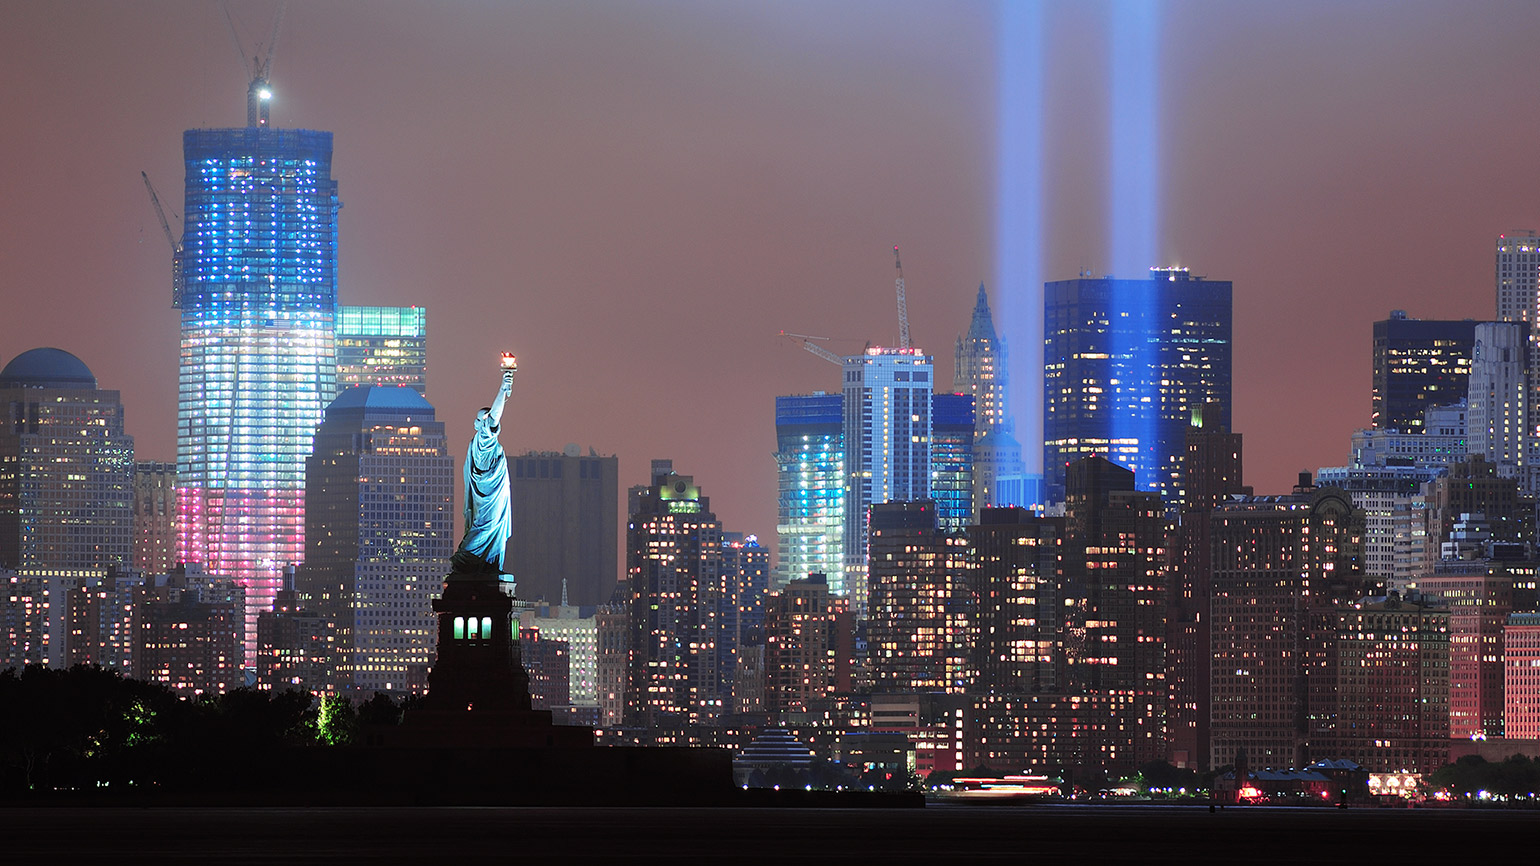 Twin light beams stream skyward in memory of those lost on 9/11